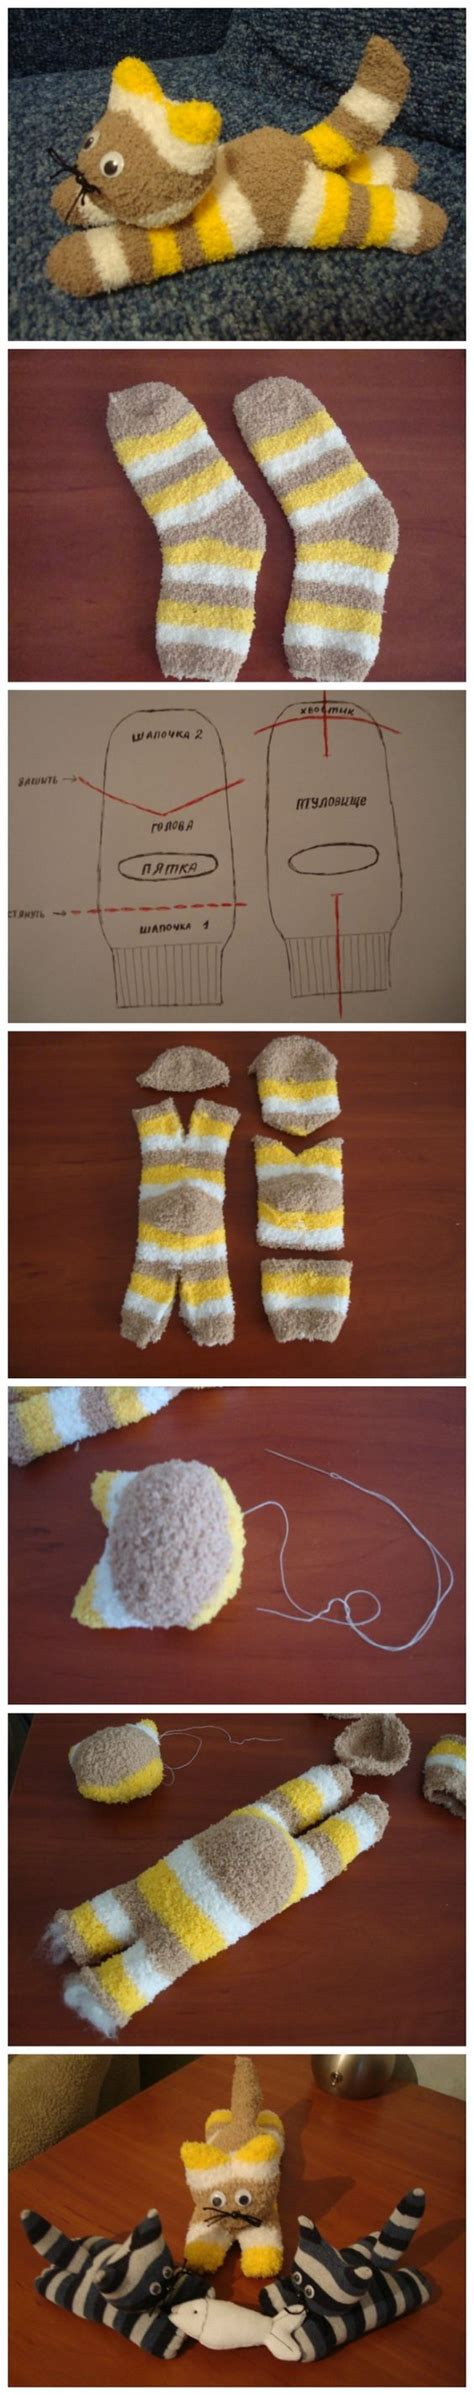 diy projects tutorials 50 easy diy projects with lots of tutorials